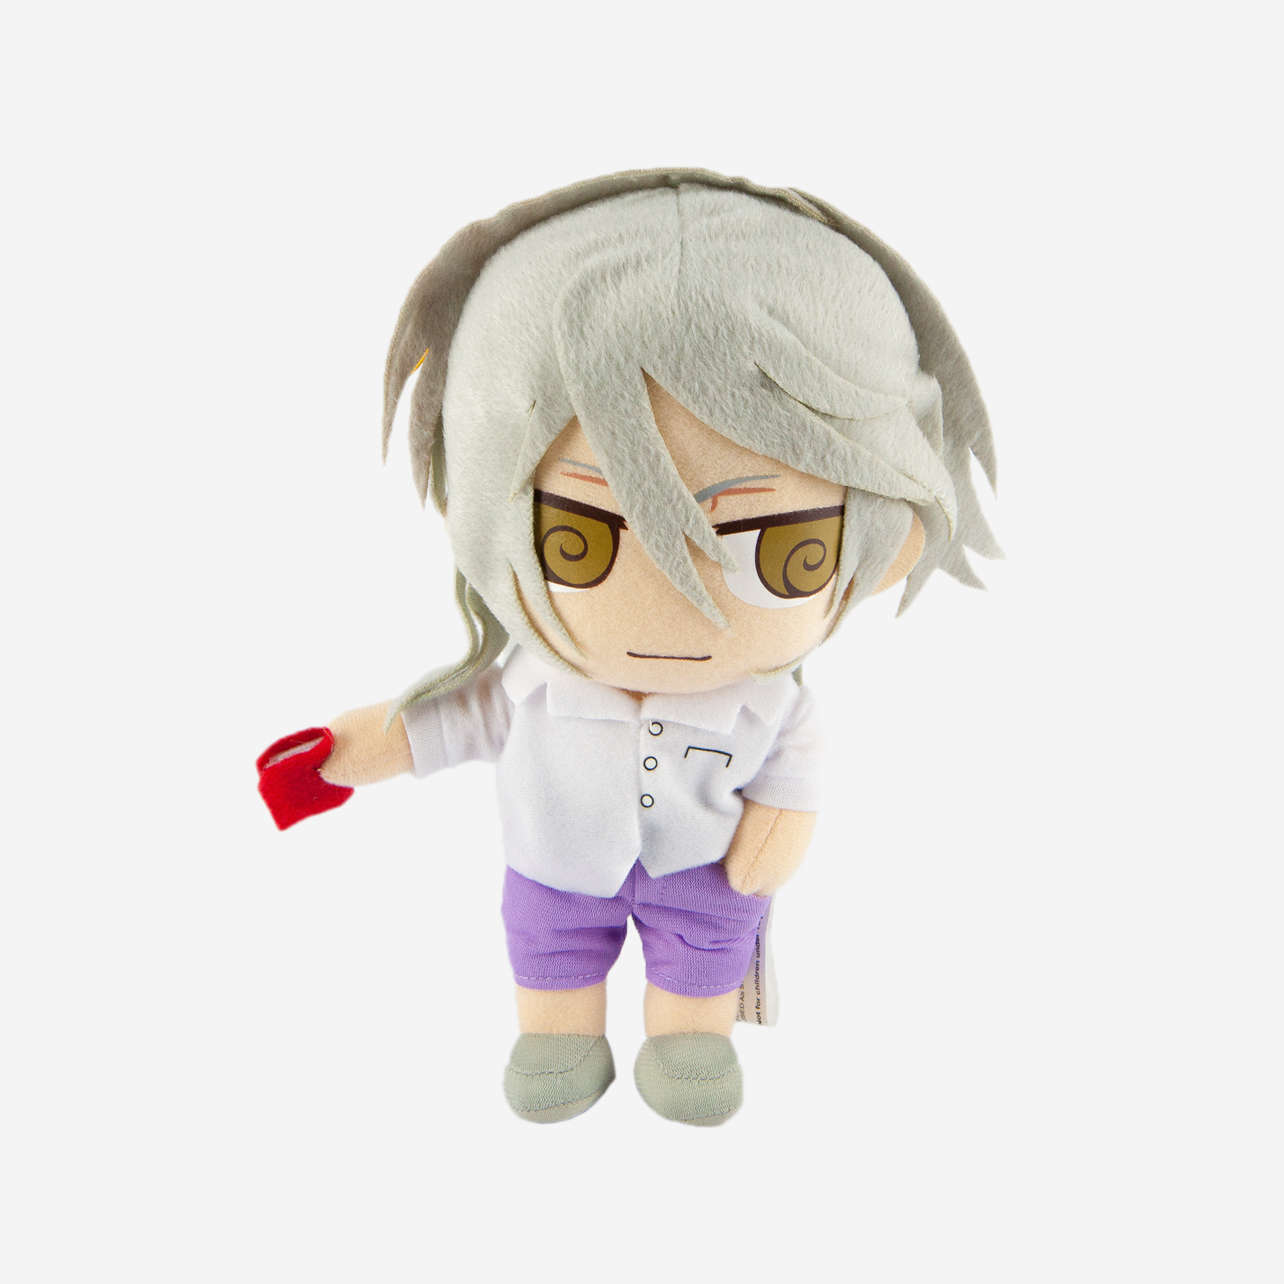 Makishima Plush 8'' toys-games